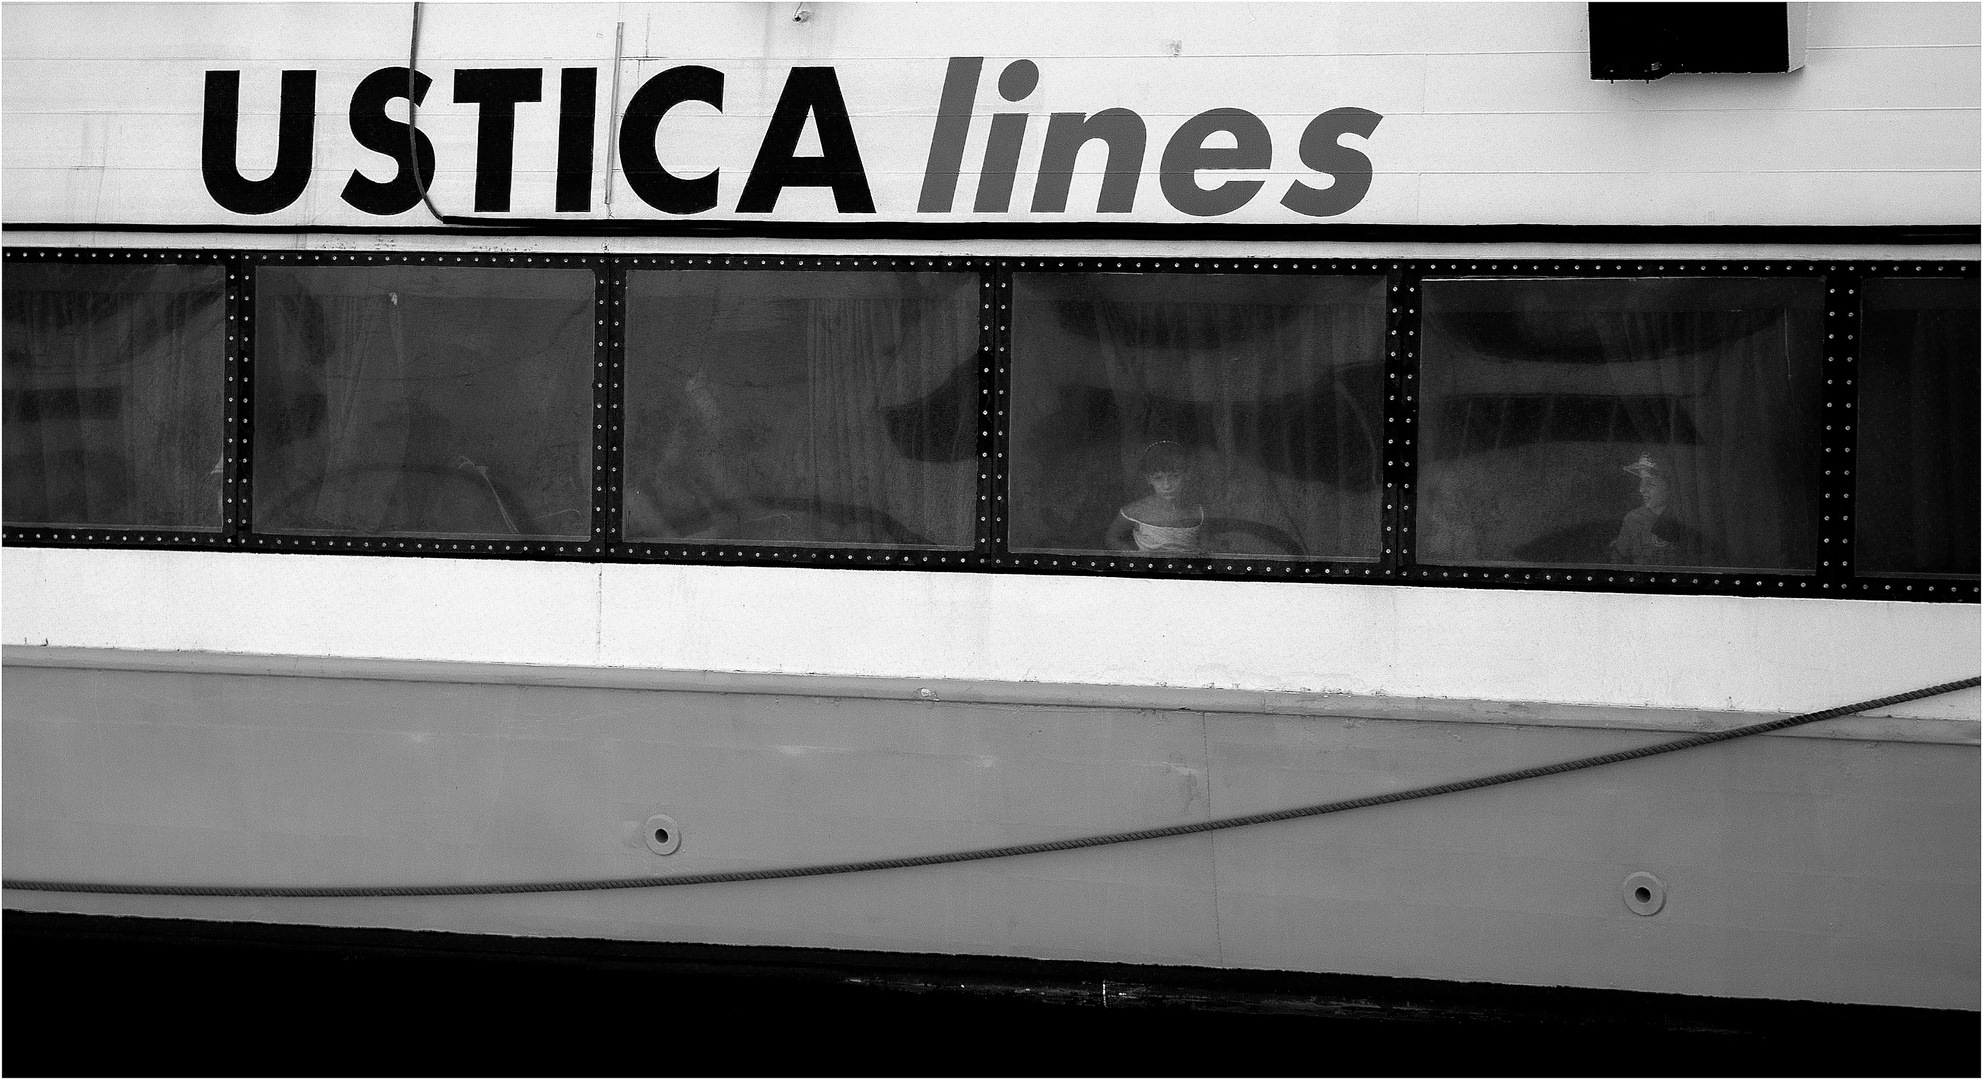 USTICA lines